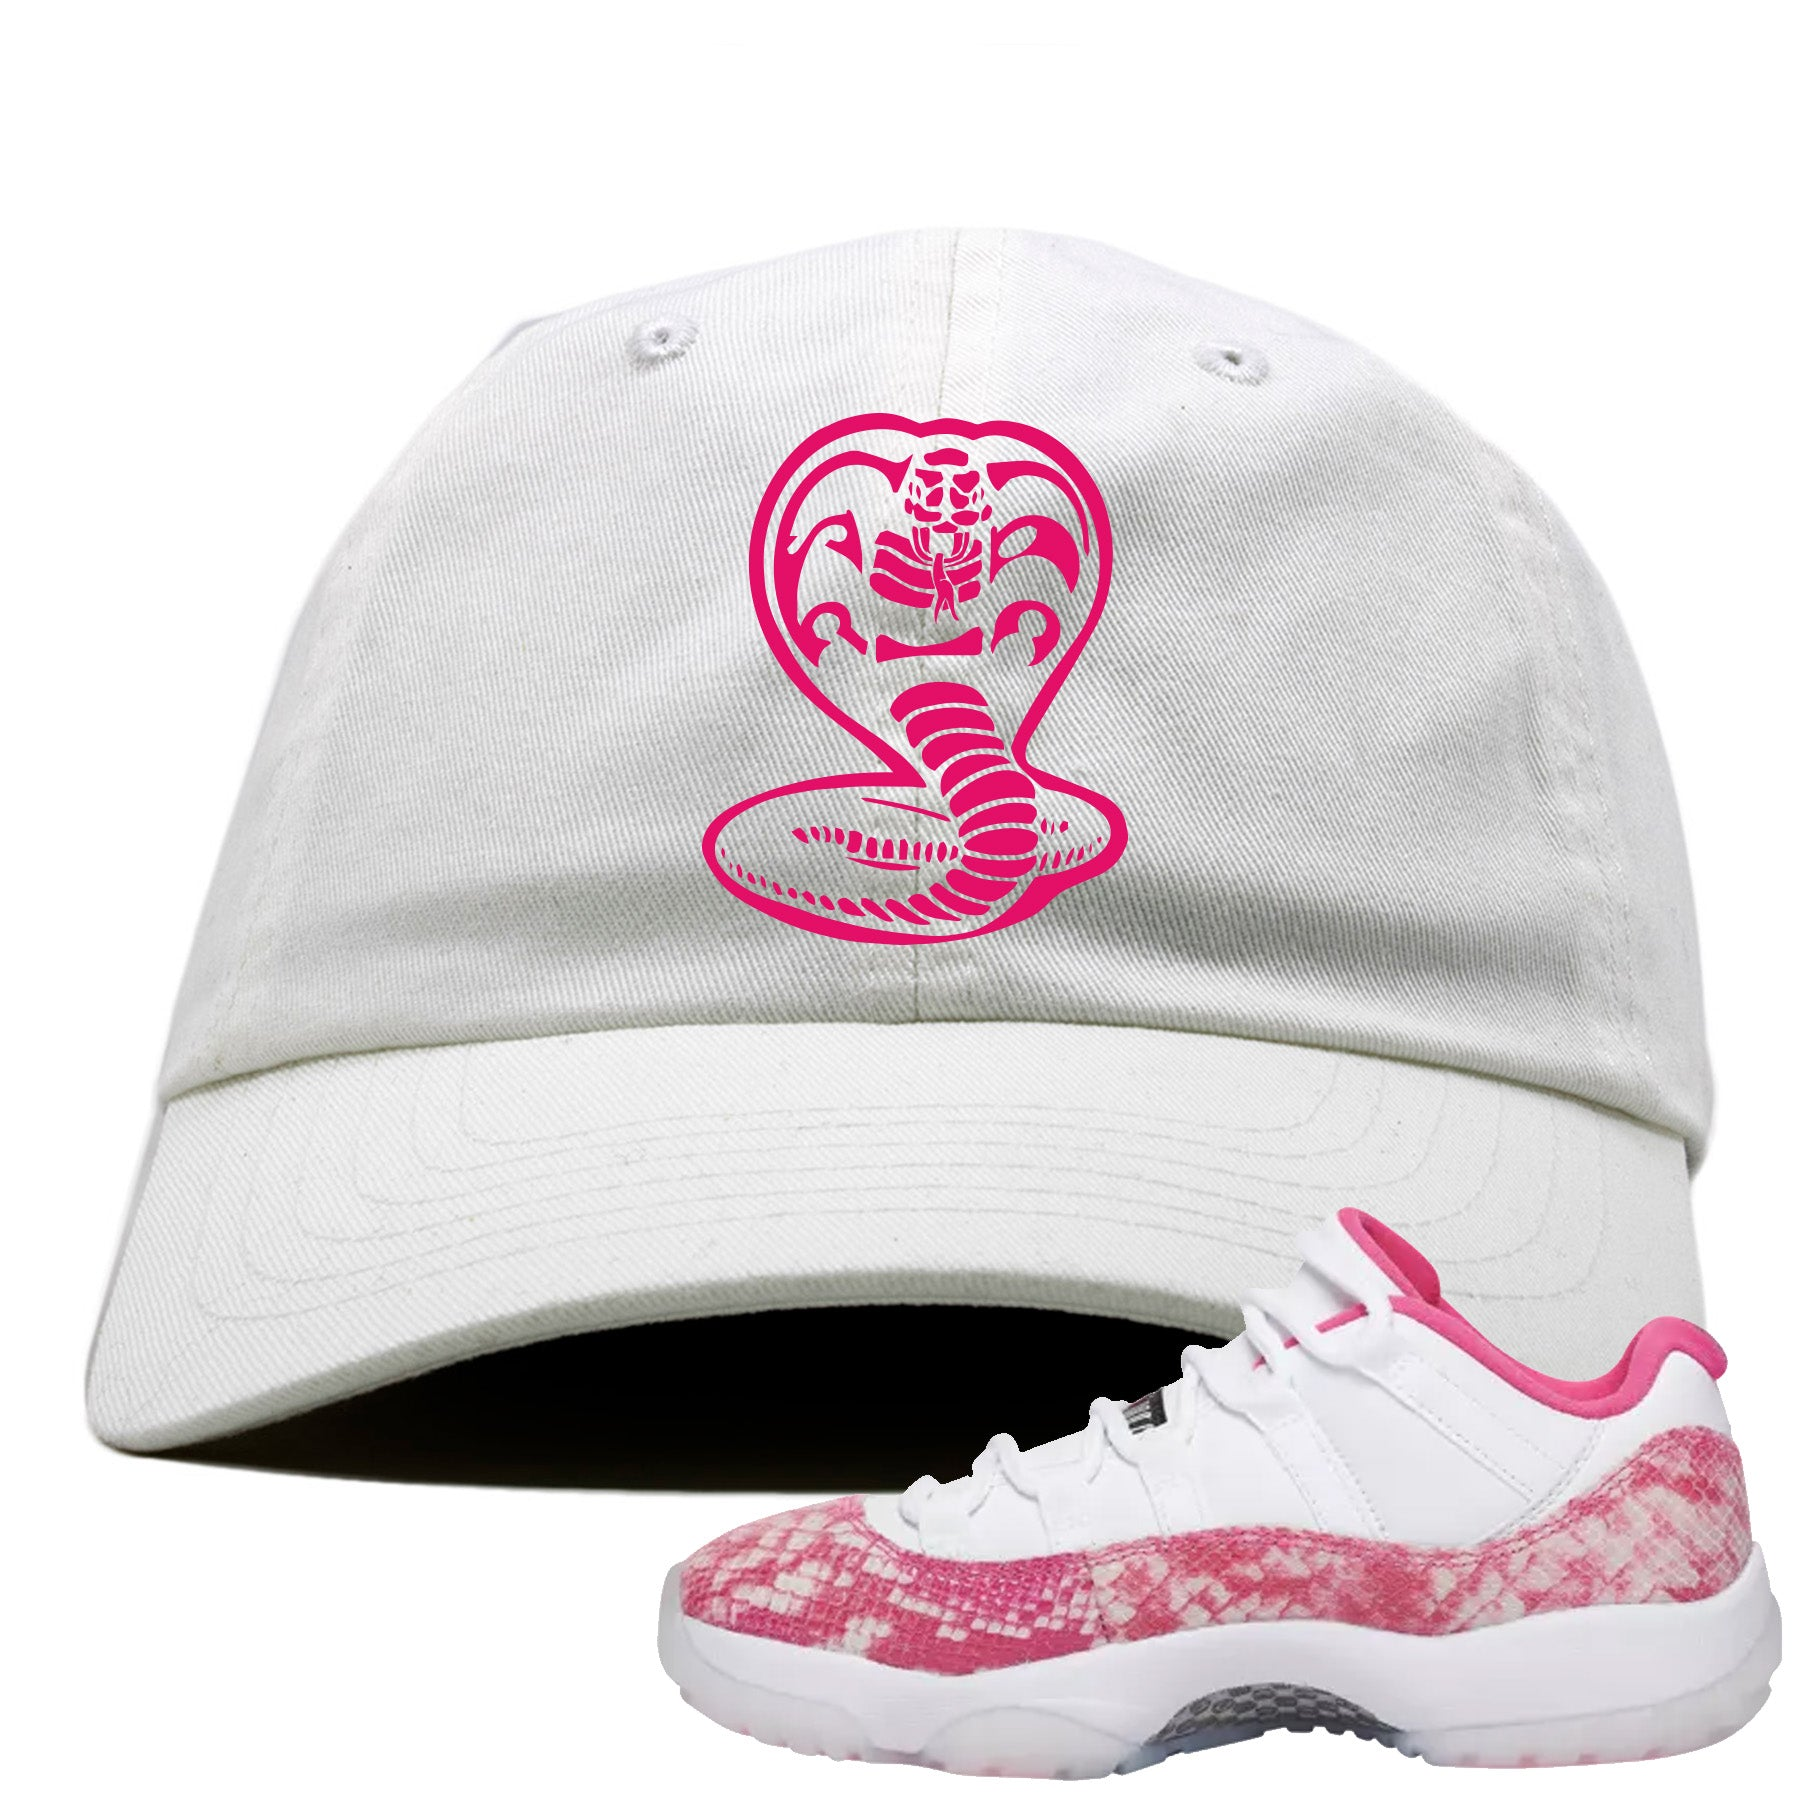 64cbf5f5c55 Air Jordan 11 Low WMNS Pink Snakeskin Sneaker Match Cobra Snake White Dad  Hat